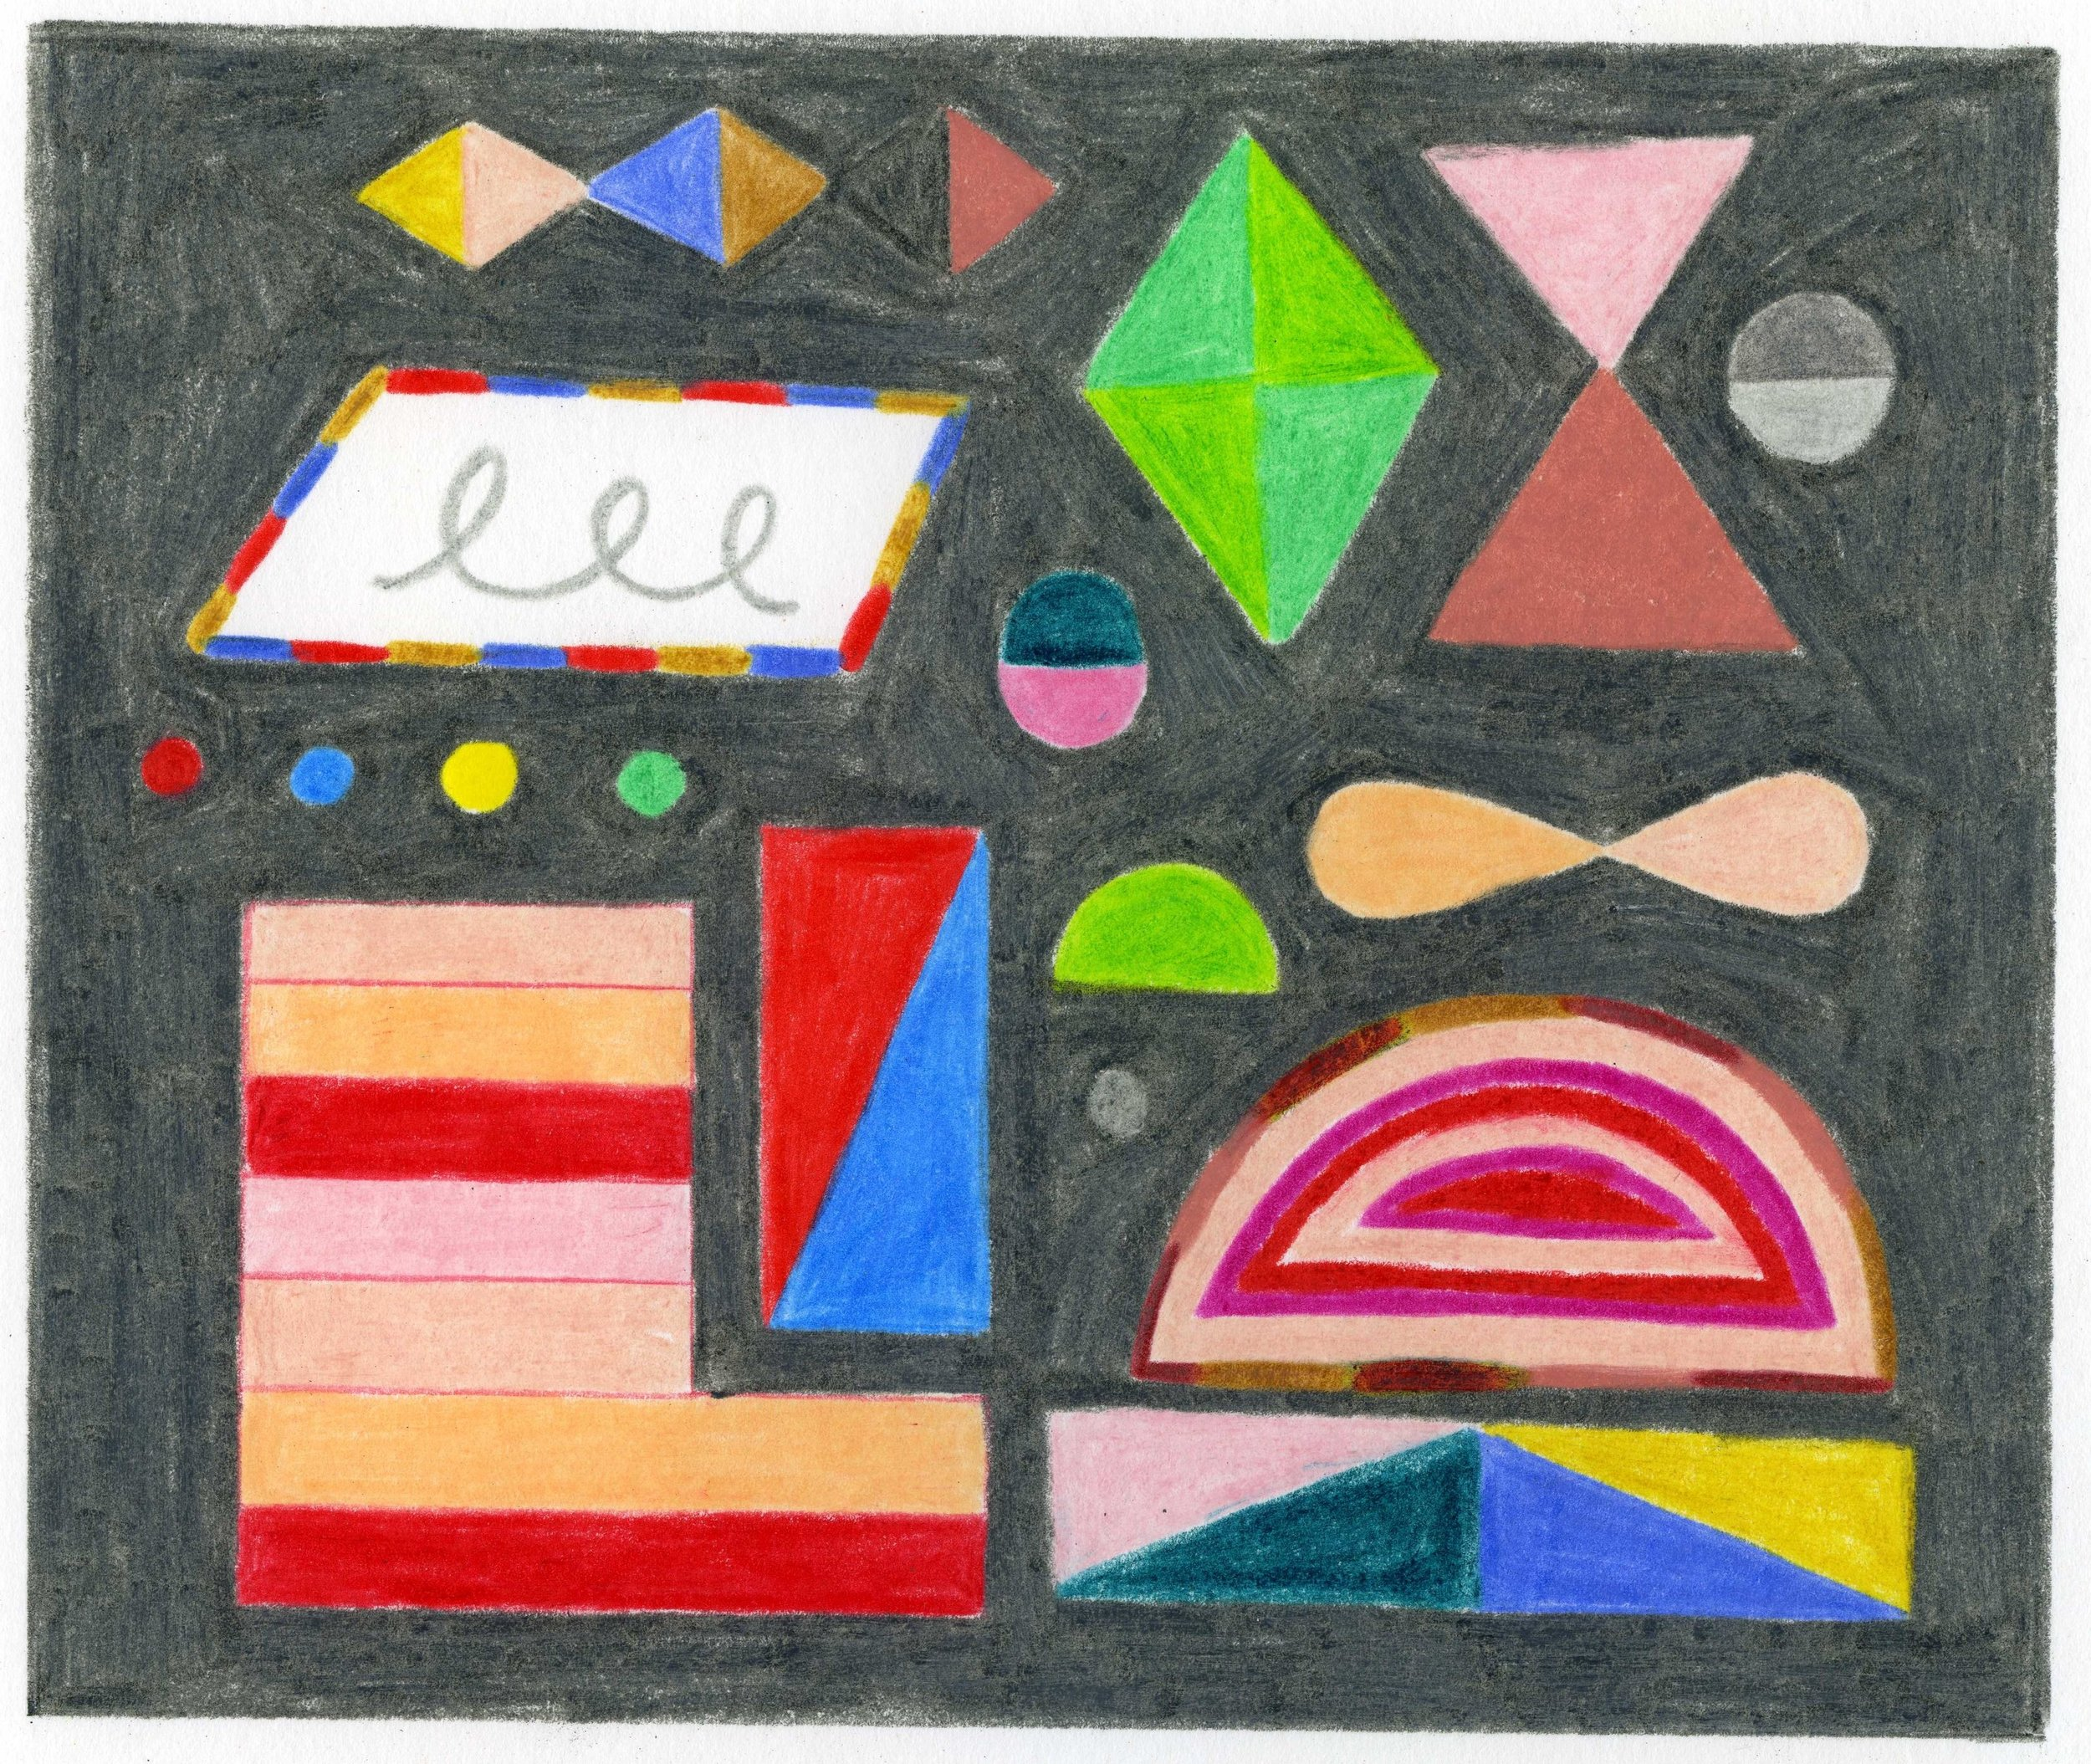 """Arcade Lights   4.75"""" x 5.625"""" drawing on 9"""" x 12"""" paper  colored pencil on bristol paper  2019"""